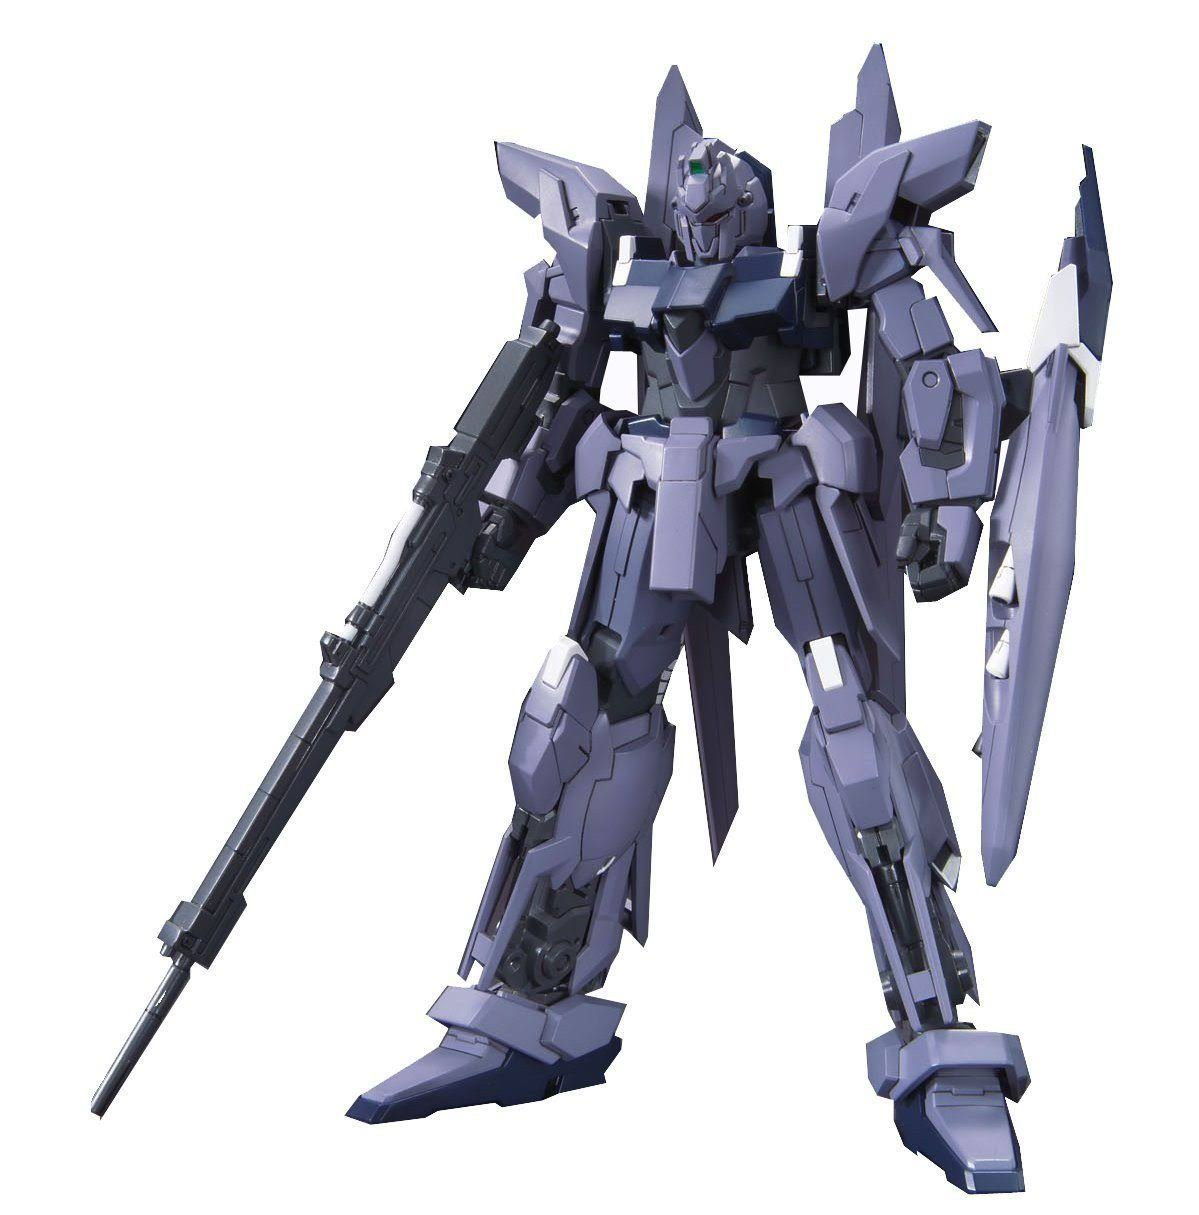 Bandai Hobby MSN-001A1 Delta Plus Mobile Suit Gundam Model Kit - 1/144 scale